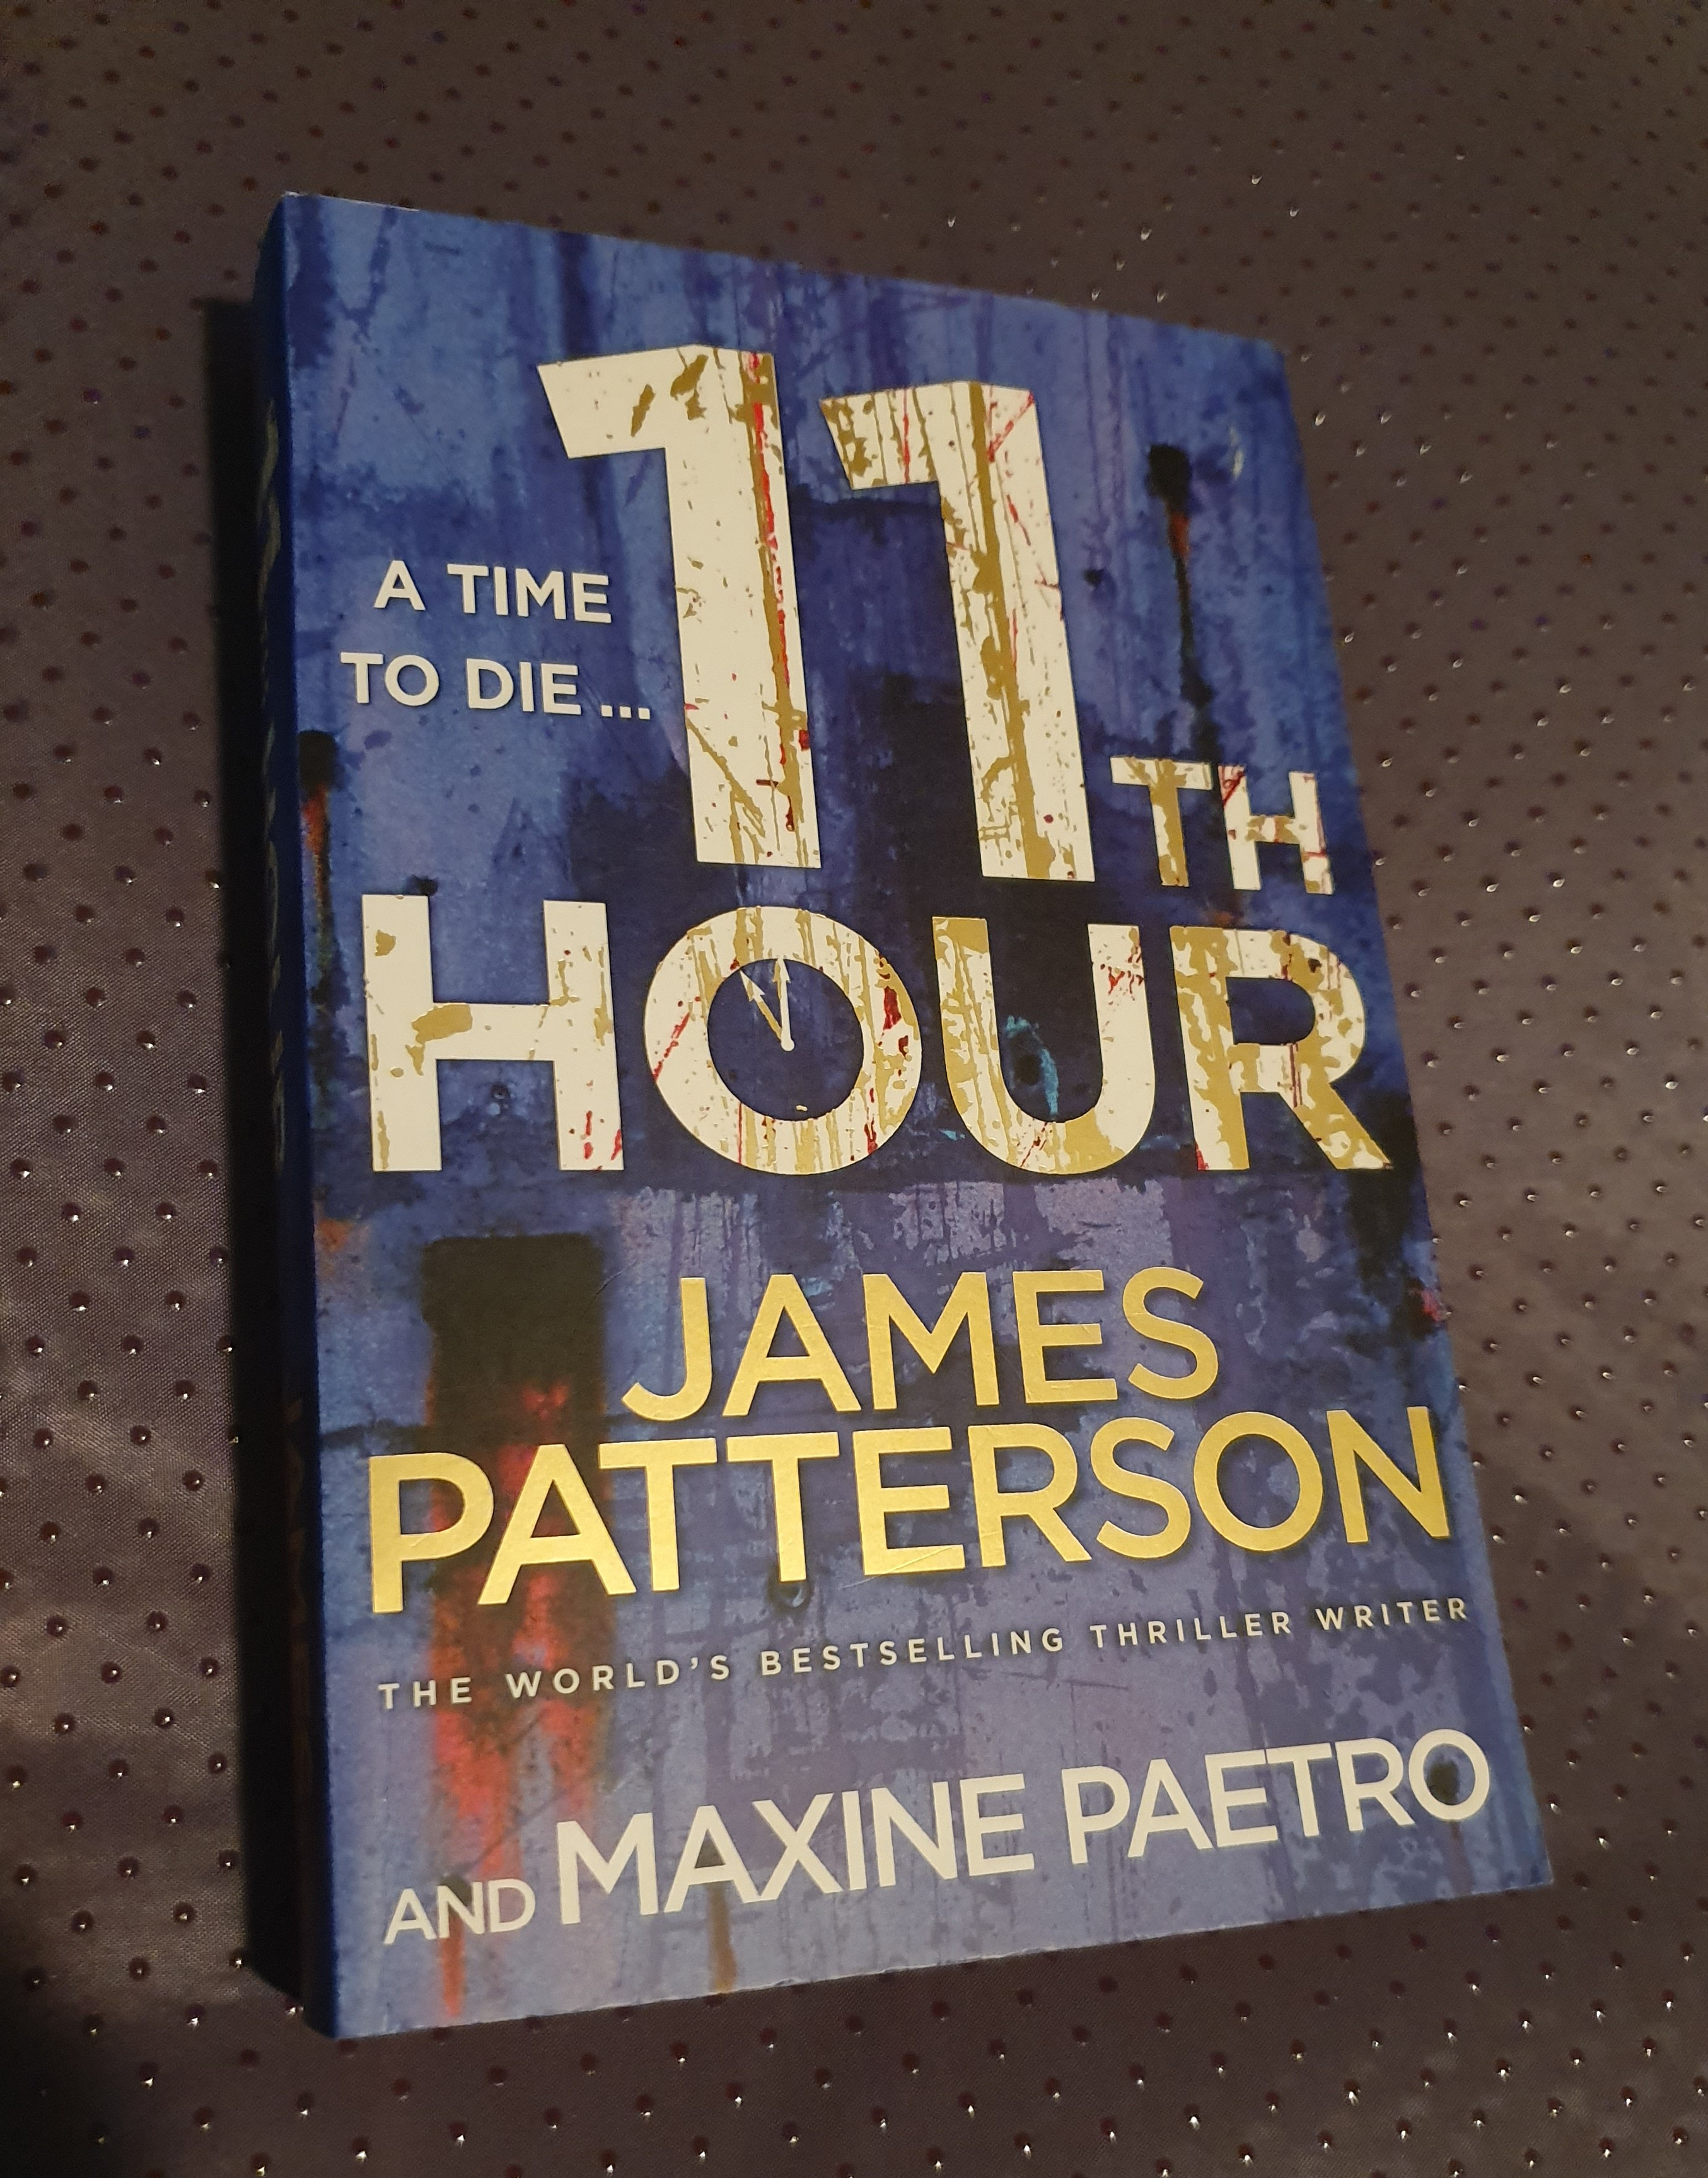 11th-hour-by-james-patterson.jpg